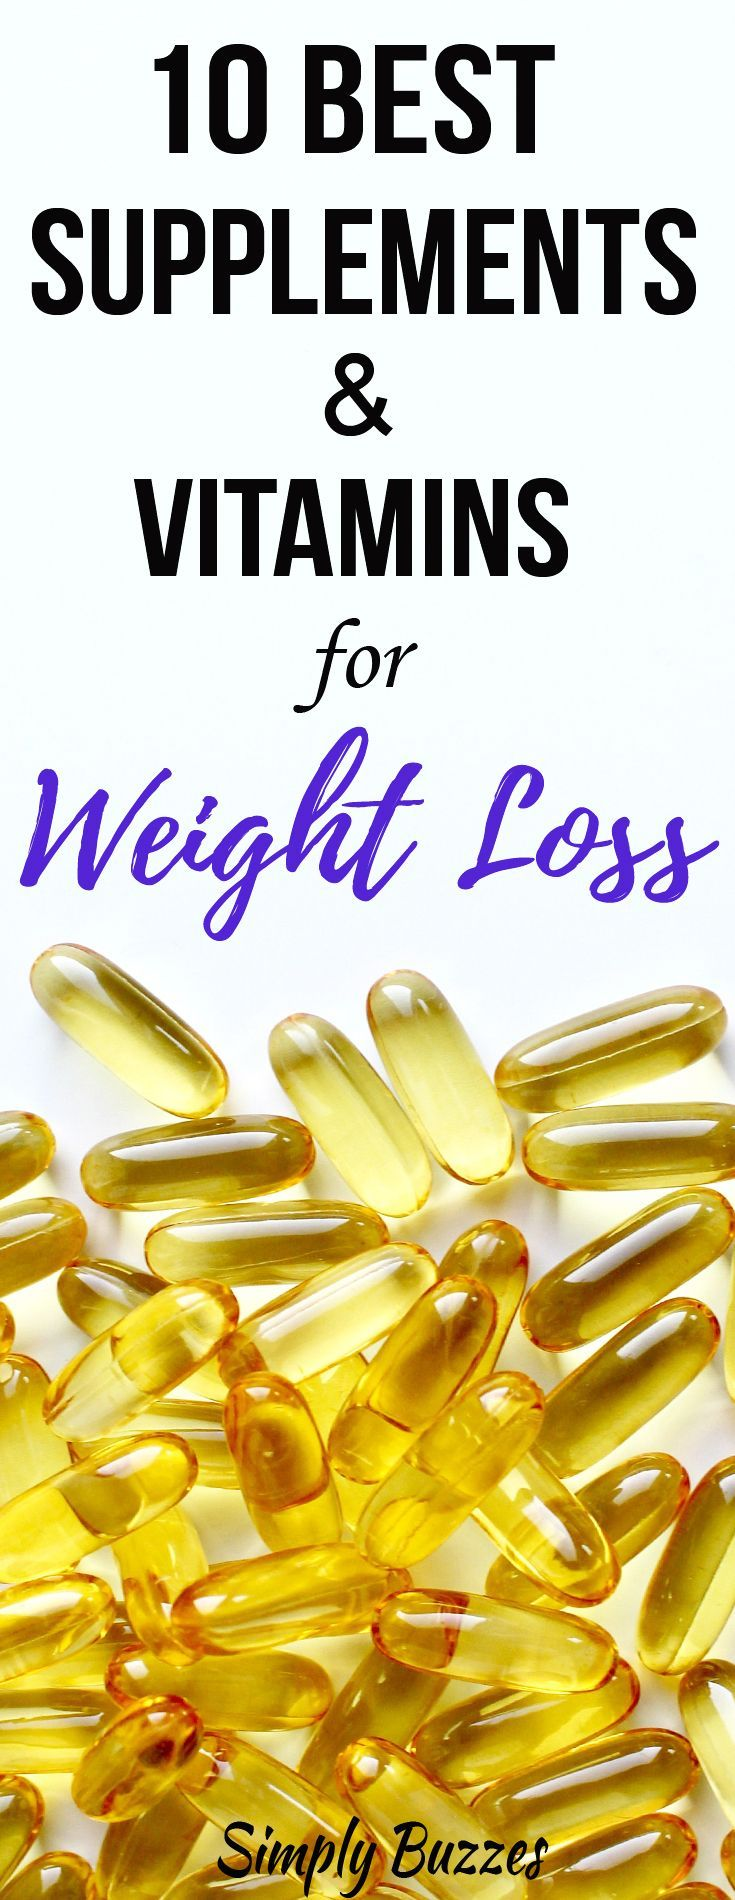 10 Best Natural Supplements And Vitamins For Weight Loss | Fat Burning Supplements For Women | http://www.simplybuzzes.com/best-natural-supplements-vitamins-weight-loss/